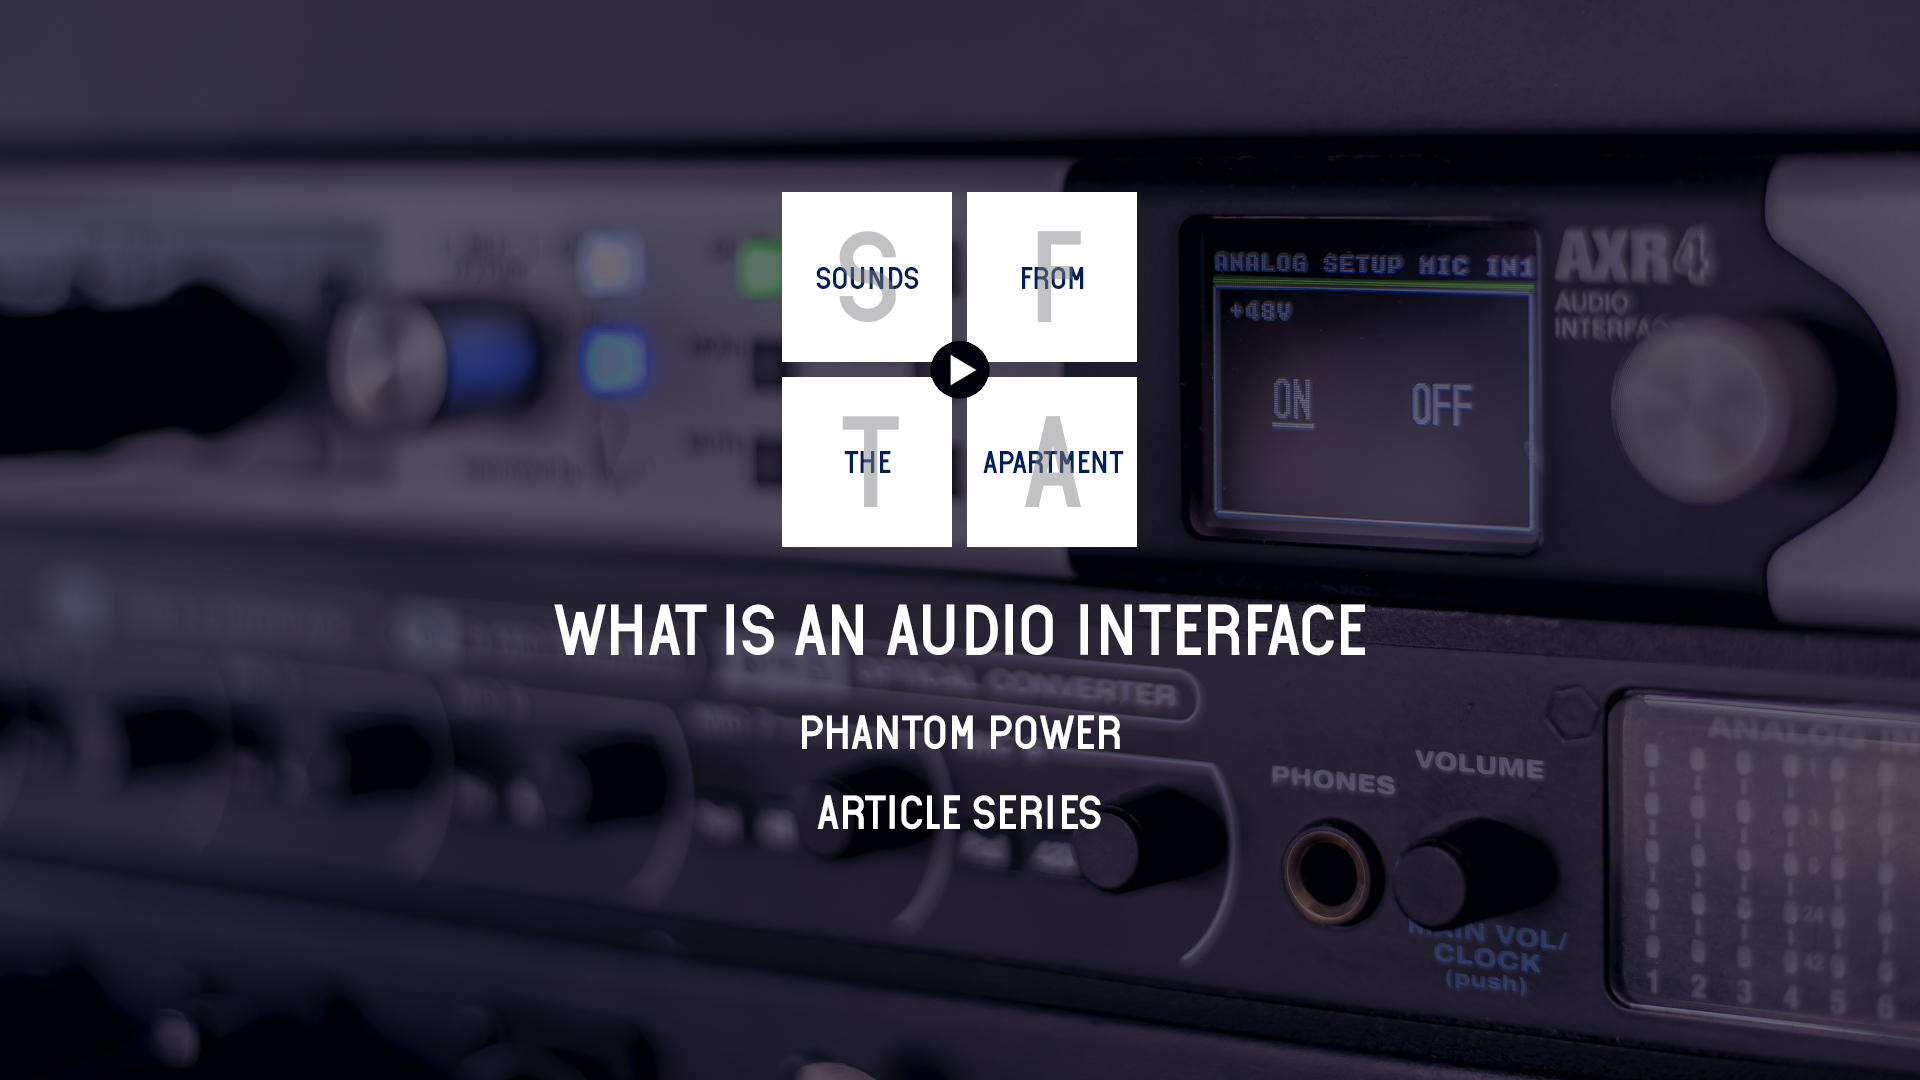 What is an audio interface phantom power sounds from the apartment